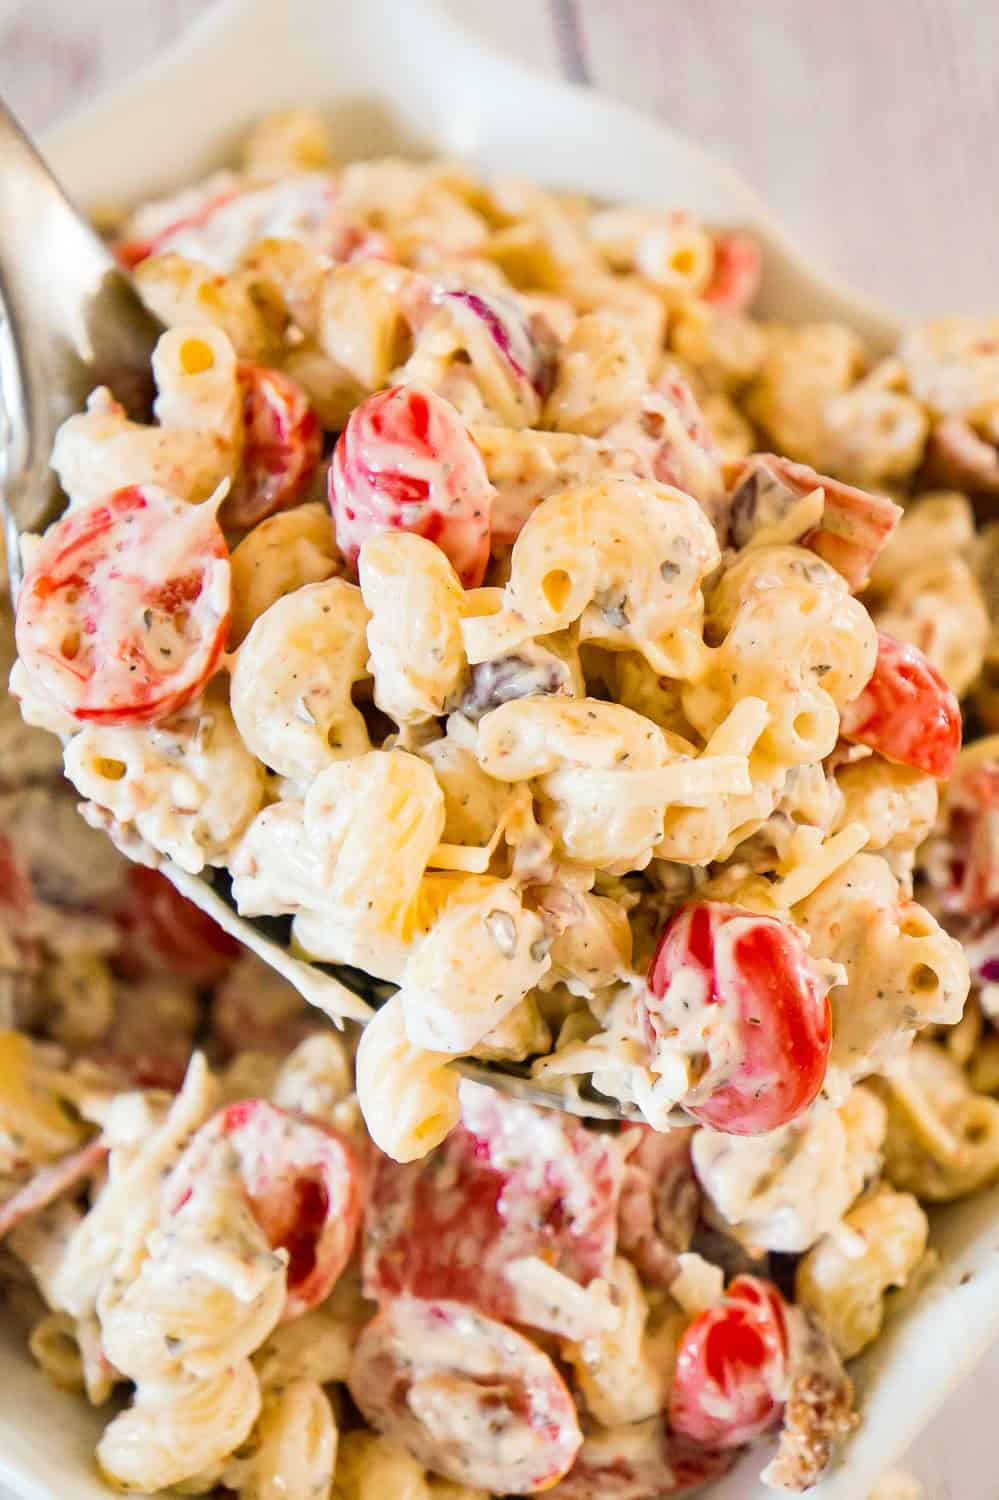 Italian Pasta Salad is a delicious cold side dish recipe perfect for potluck parties. This creamy pasta salad is loaded with cherry tomatoes, red onions, salami, bacon, basil pesto, Parmesan cheese and mozzarella cheese.